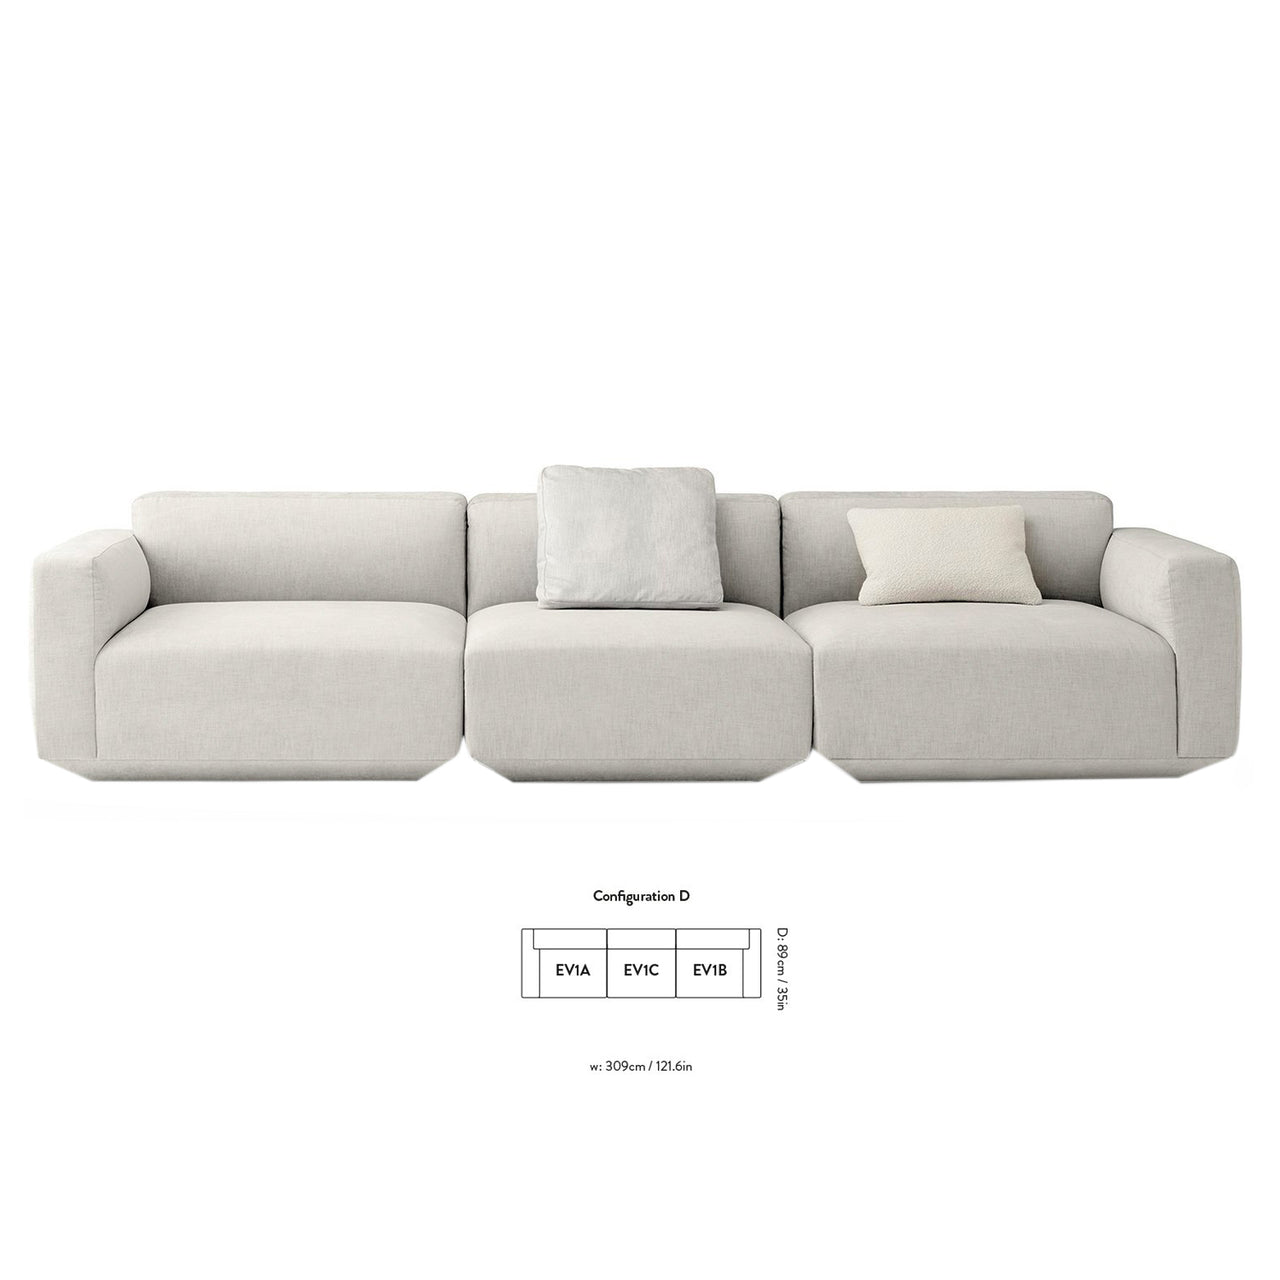 Develius Sofa - Configuration D